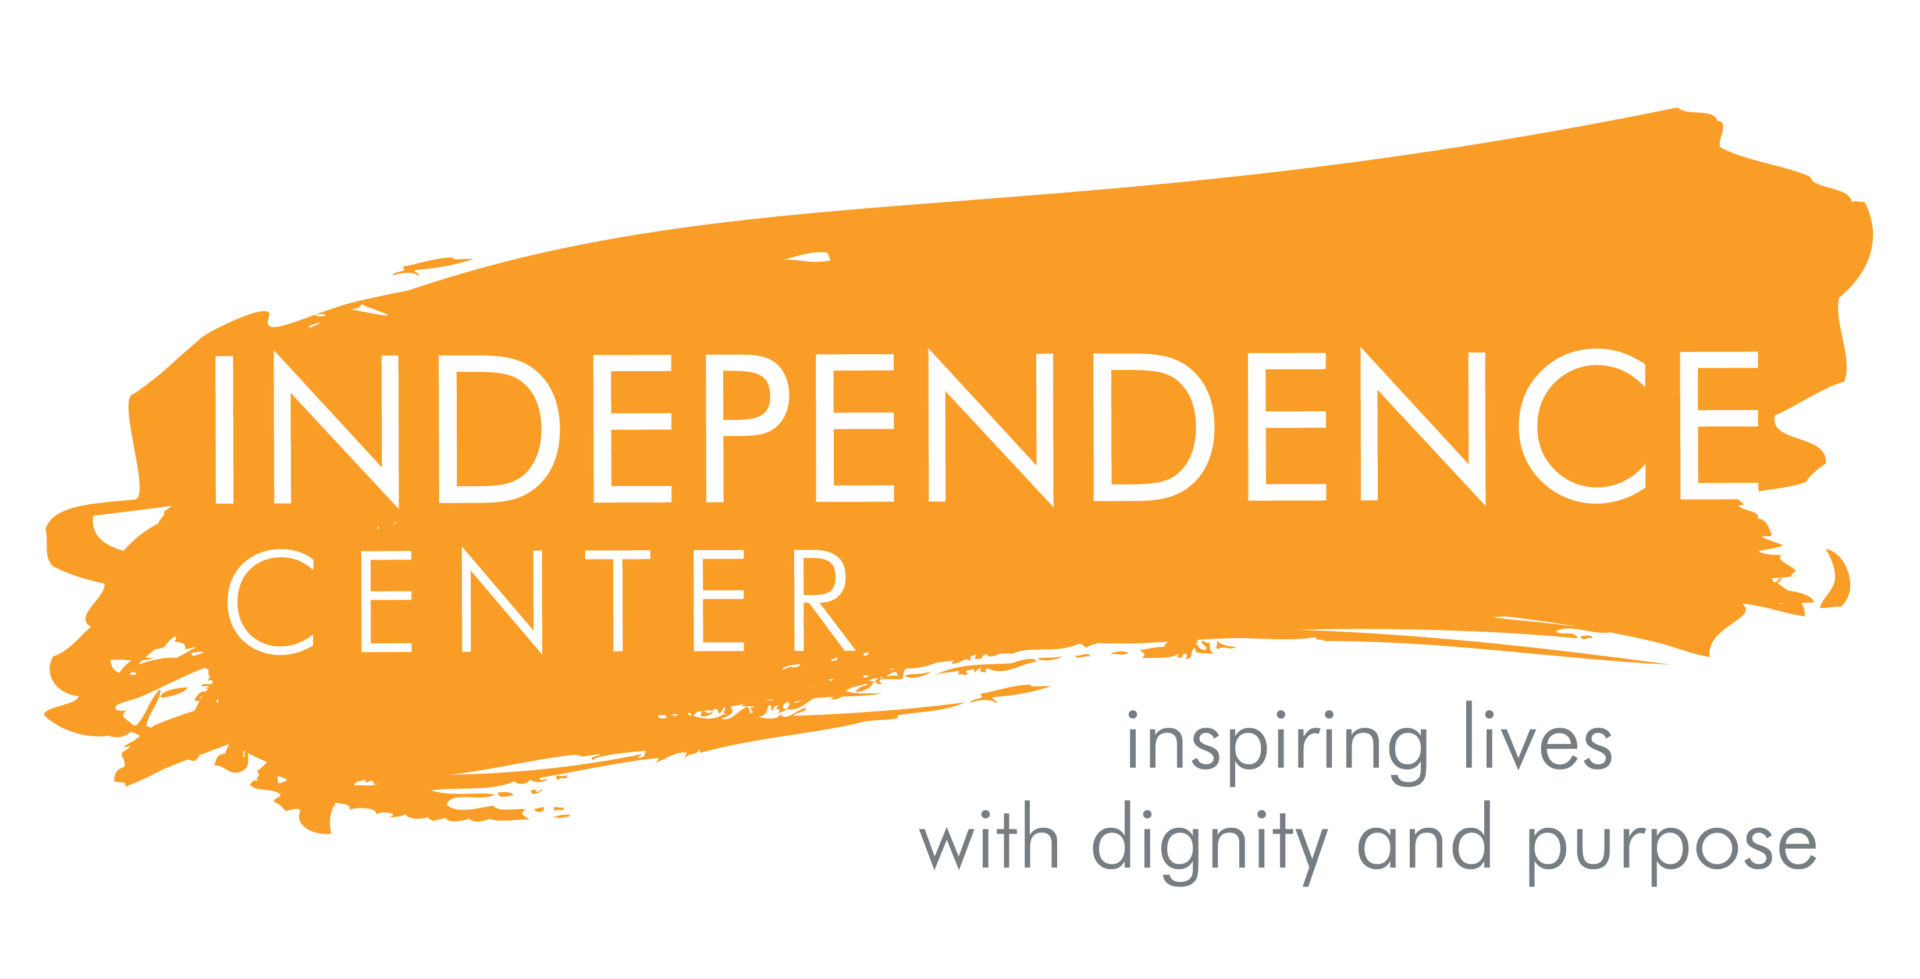 logo for the Independence Center in St. Louis